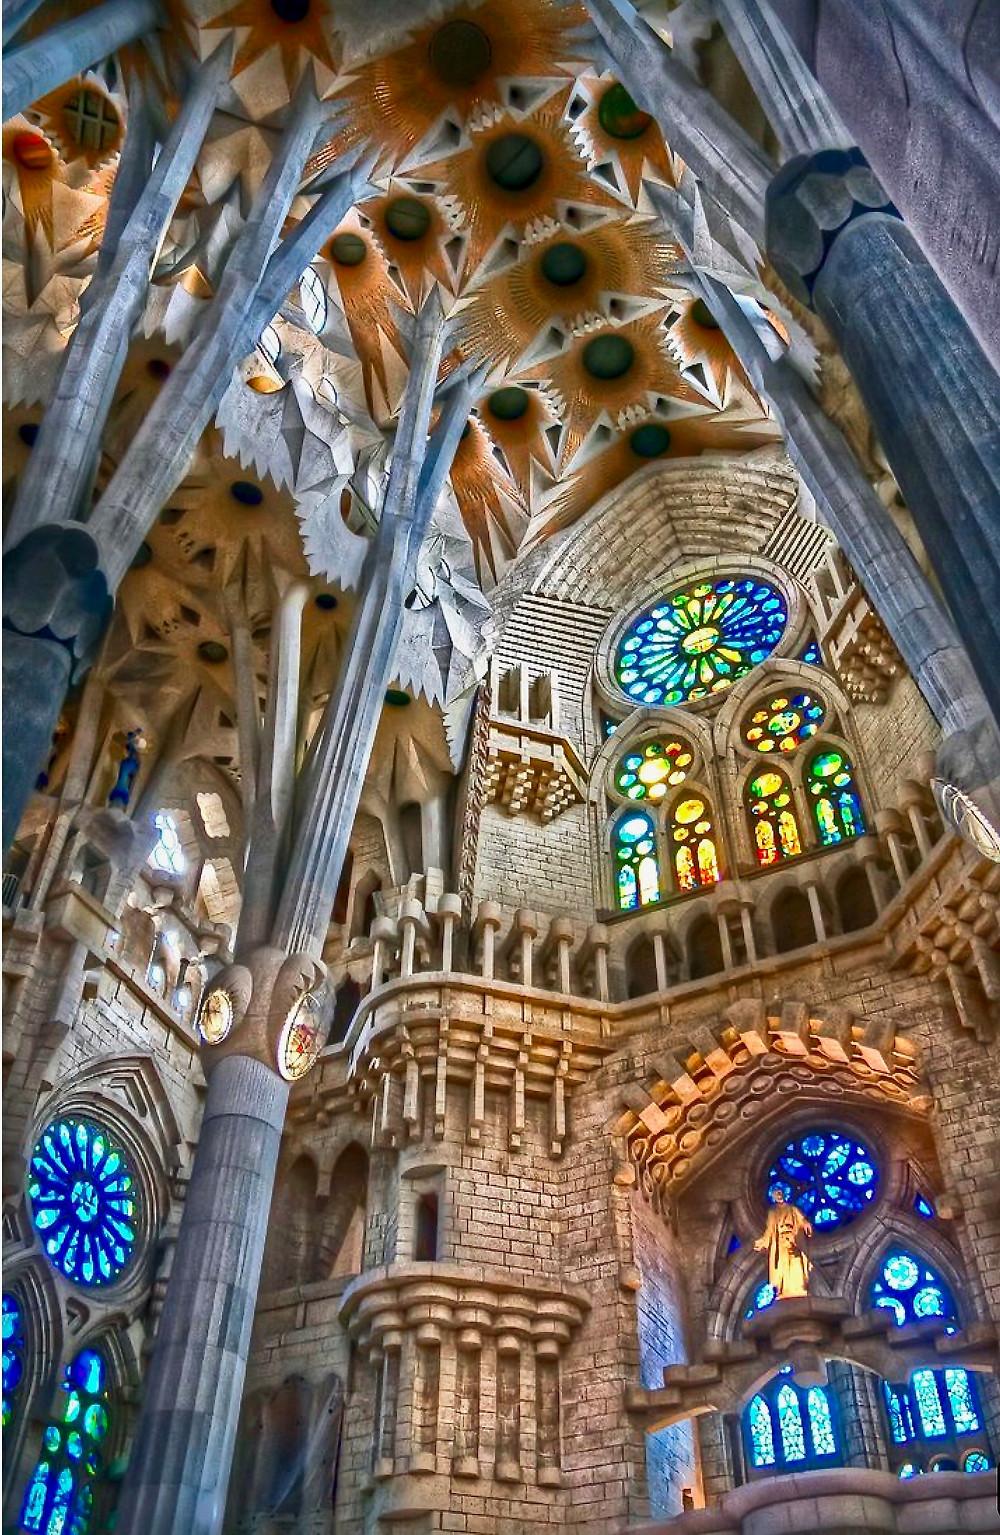 the nave and stained glass windows of Sagrada Familia in Barcleona